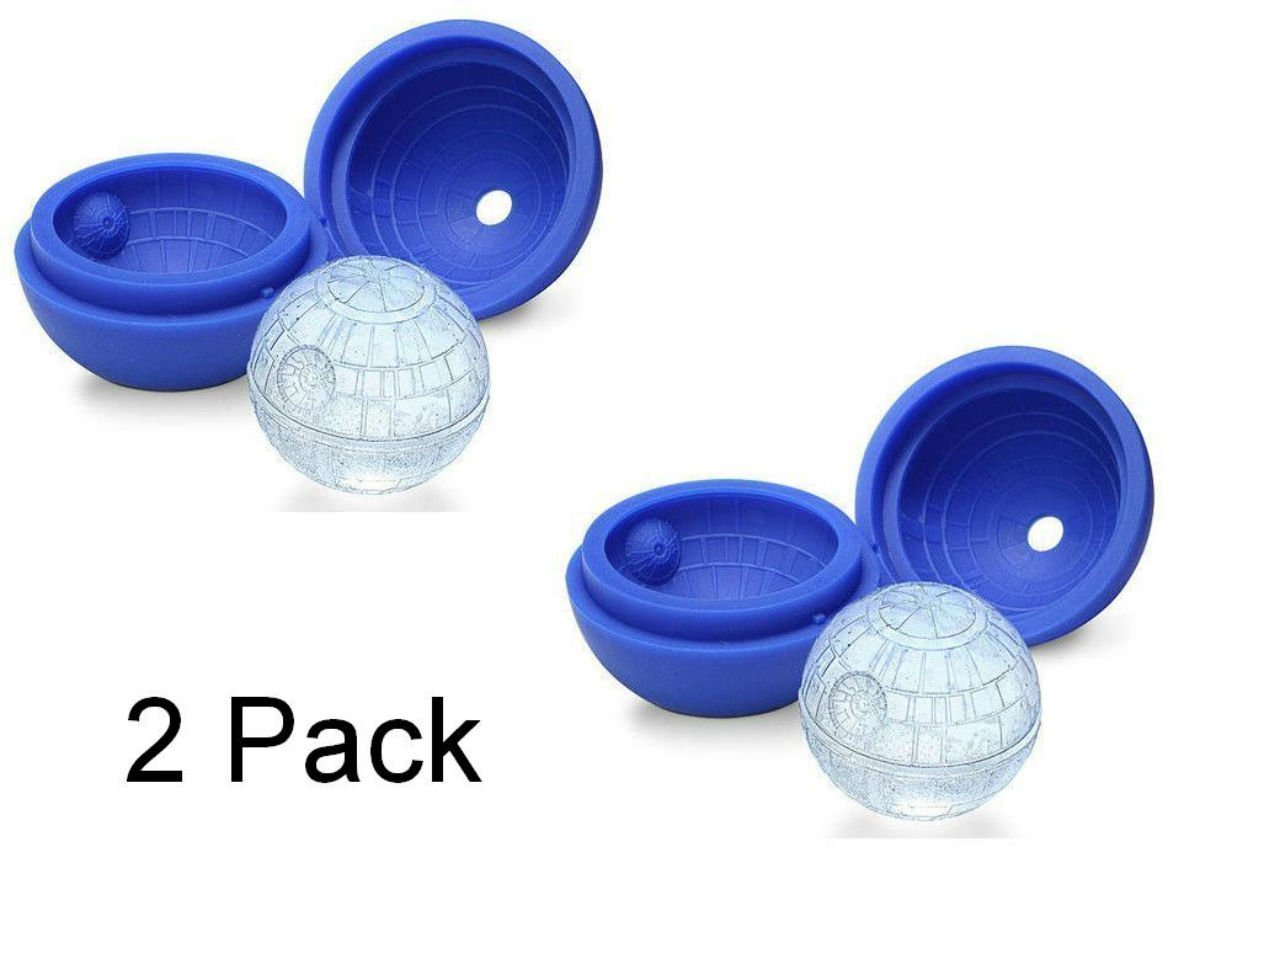 2 Pack 2.5in Food Grade Silicone Sphere Ice Ball Maker,Ice Ball Molds,Ice Ball Cube,Ice Ball Tray for Star Wars Lovers or Party Theme 2-Pack Blue